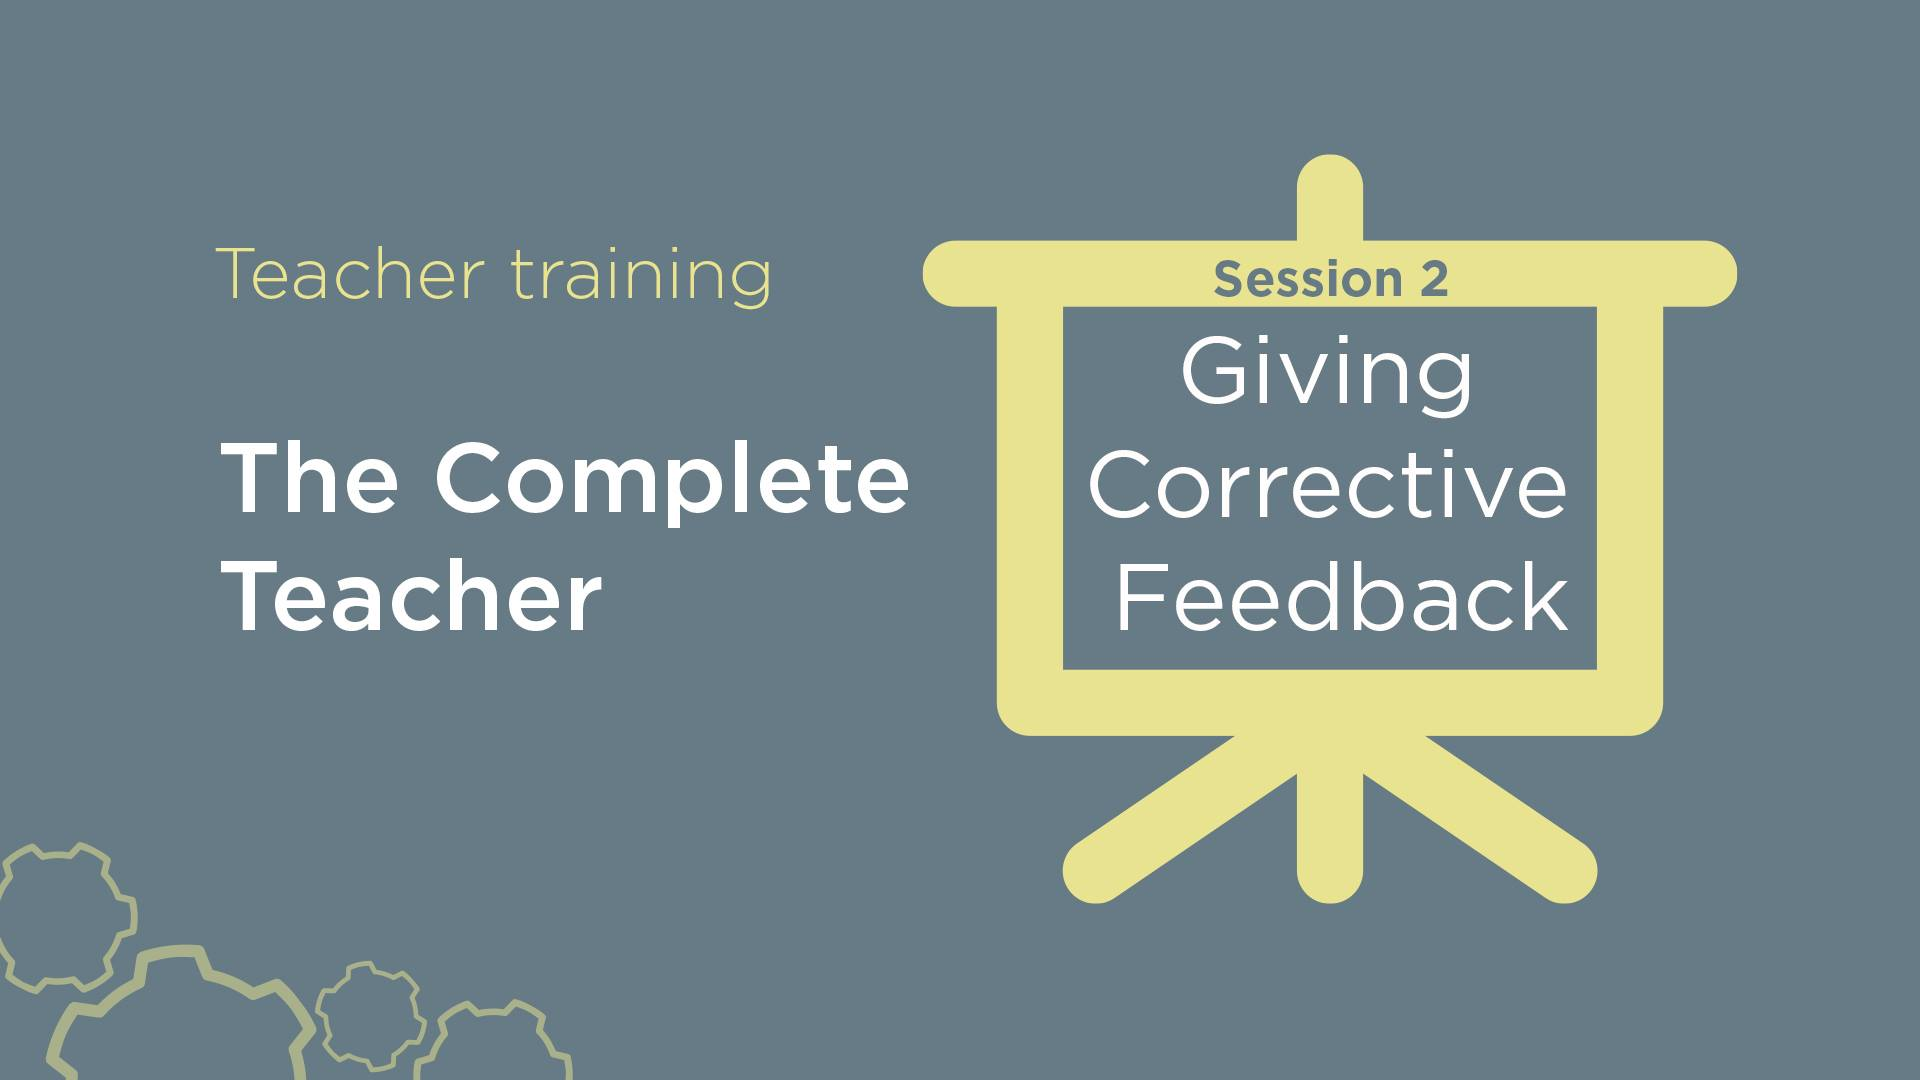 The Complete Teacher: Giving Corrective Feedback. November 7